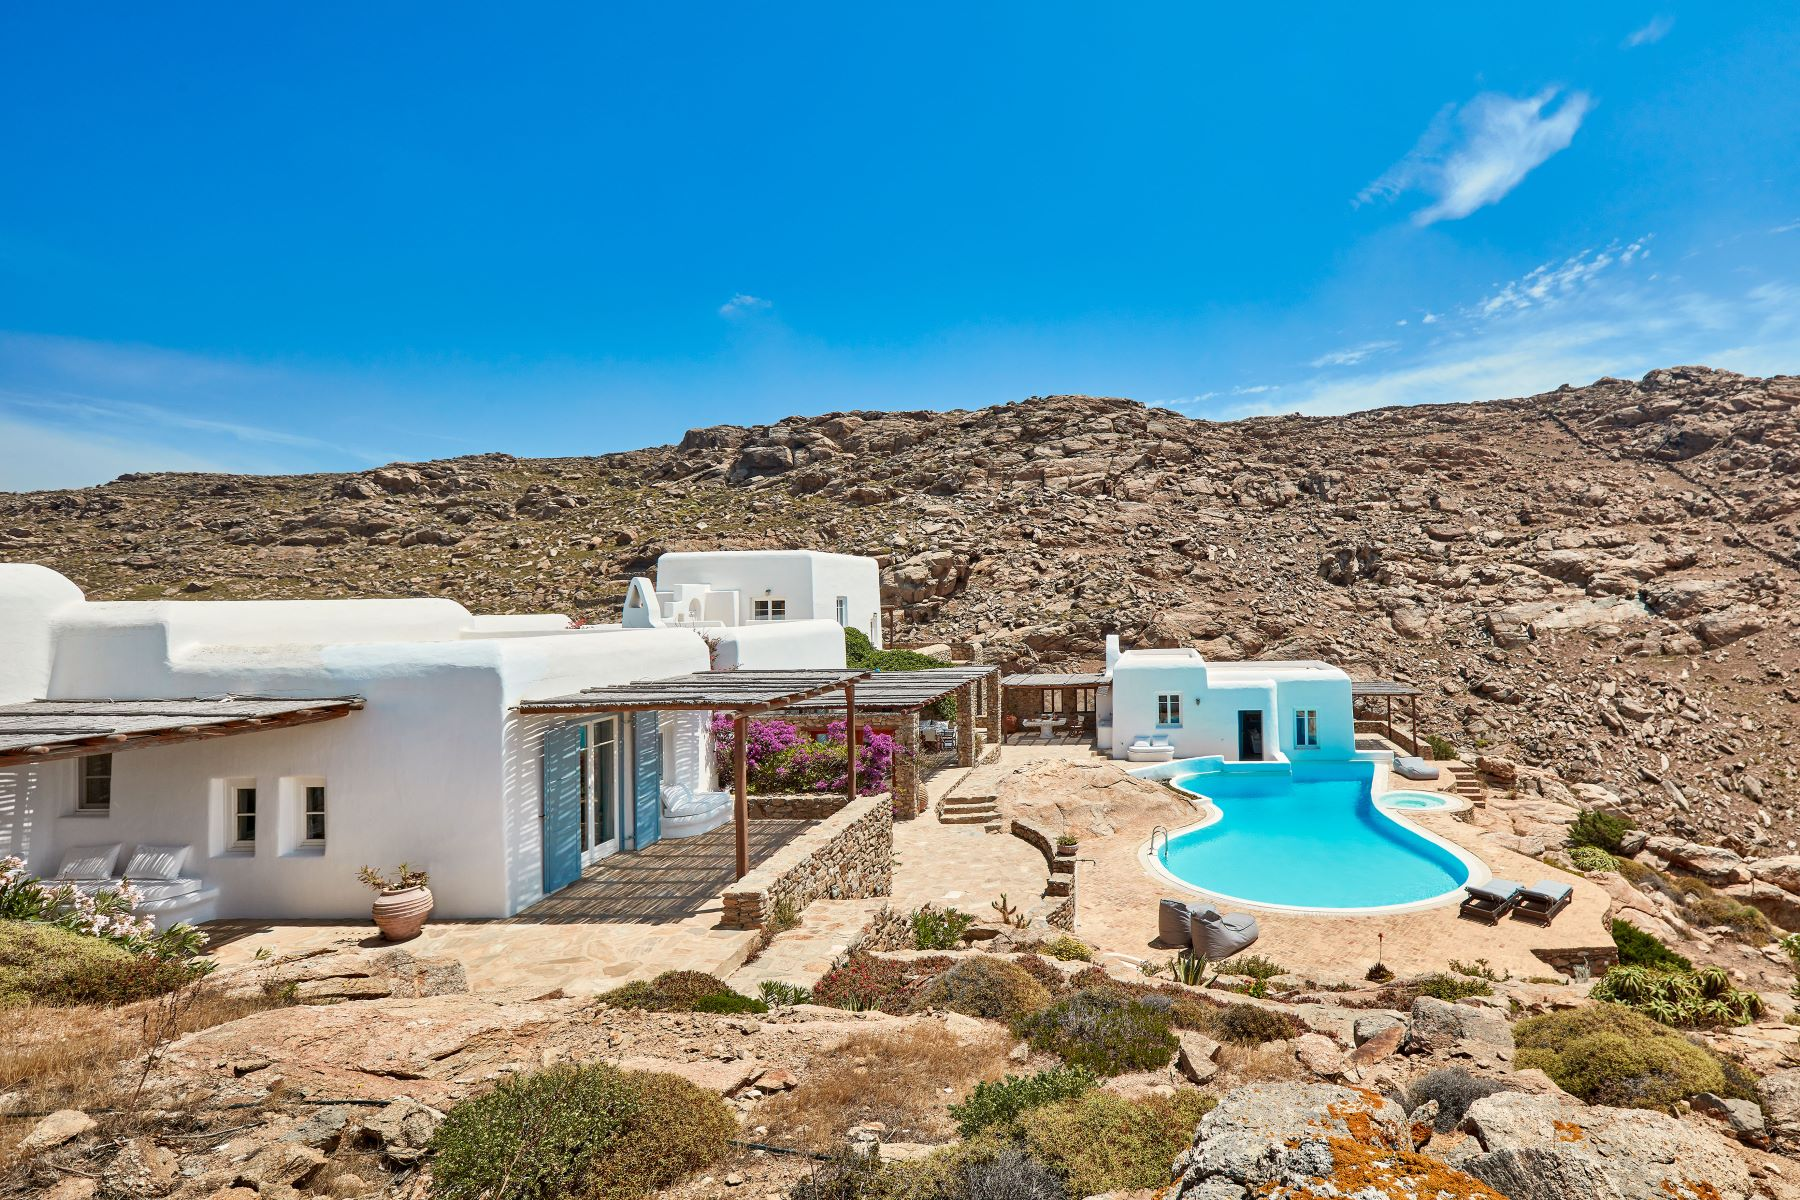 Single Family Home for Sale at Mykonos Observatory Mykonos, Southern Aegean, Greece